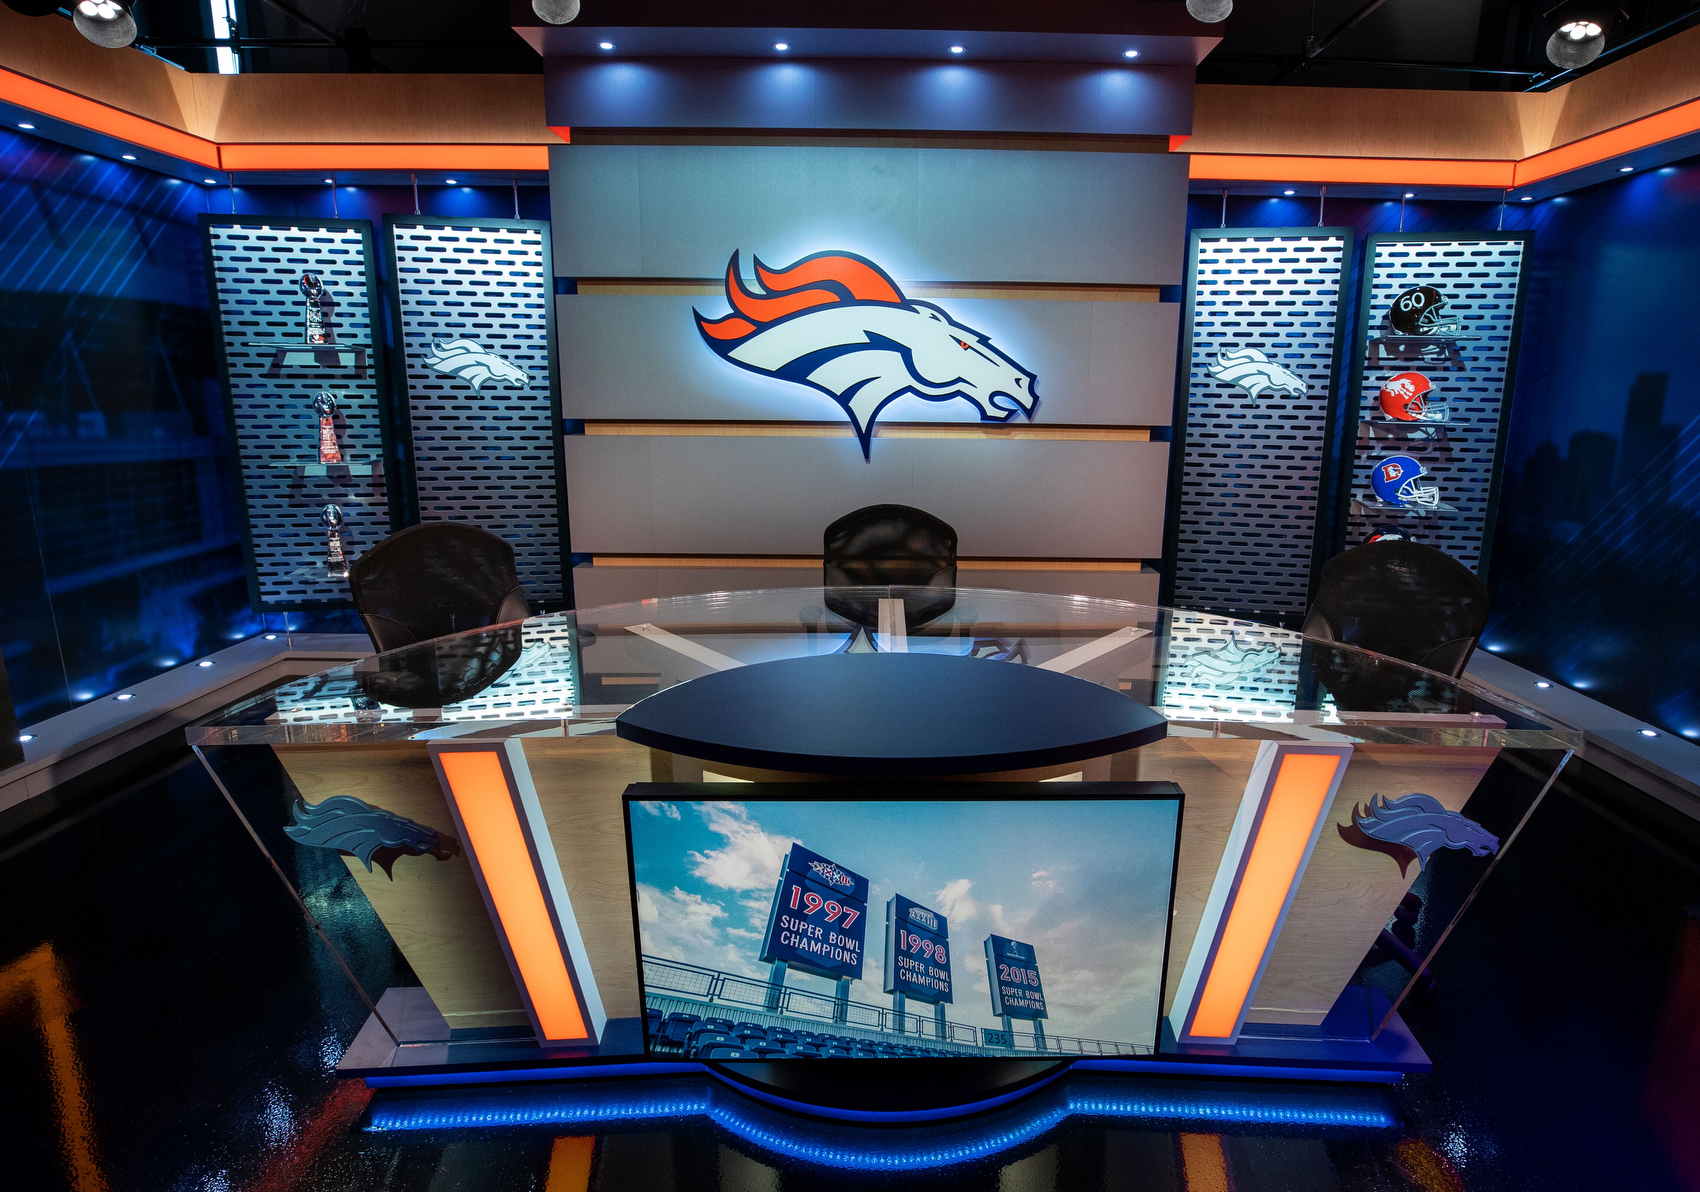 NCS_NFL-Denver-Broncos-TV-Studio_0002